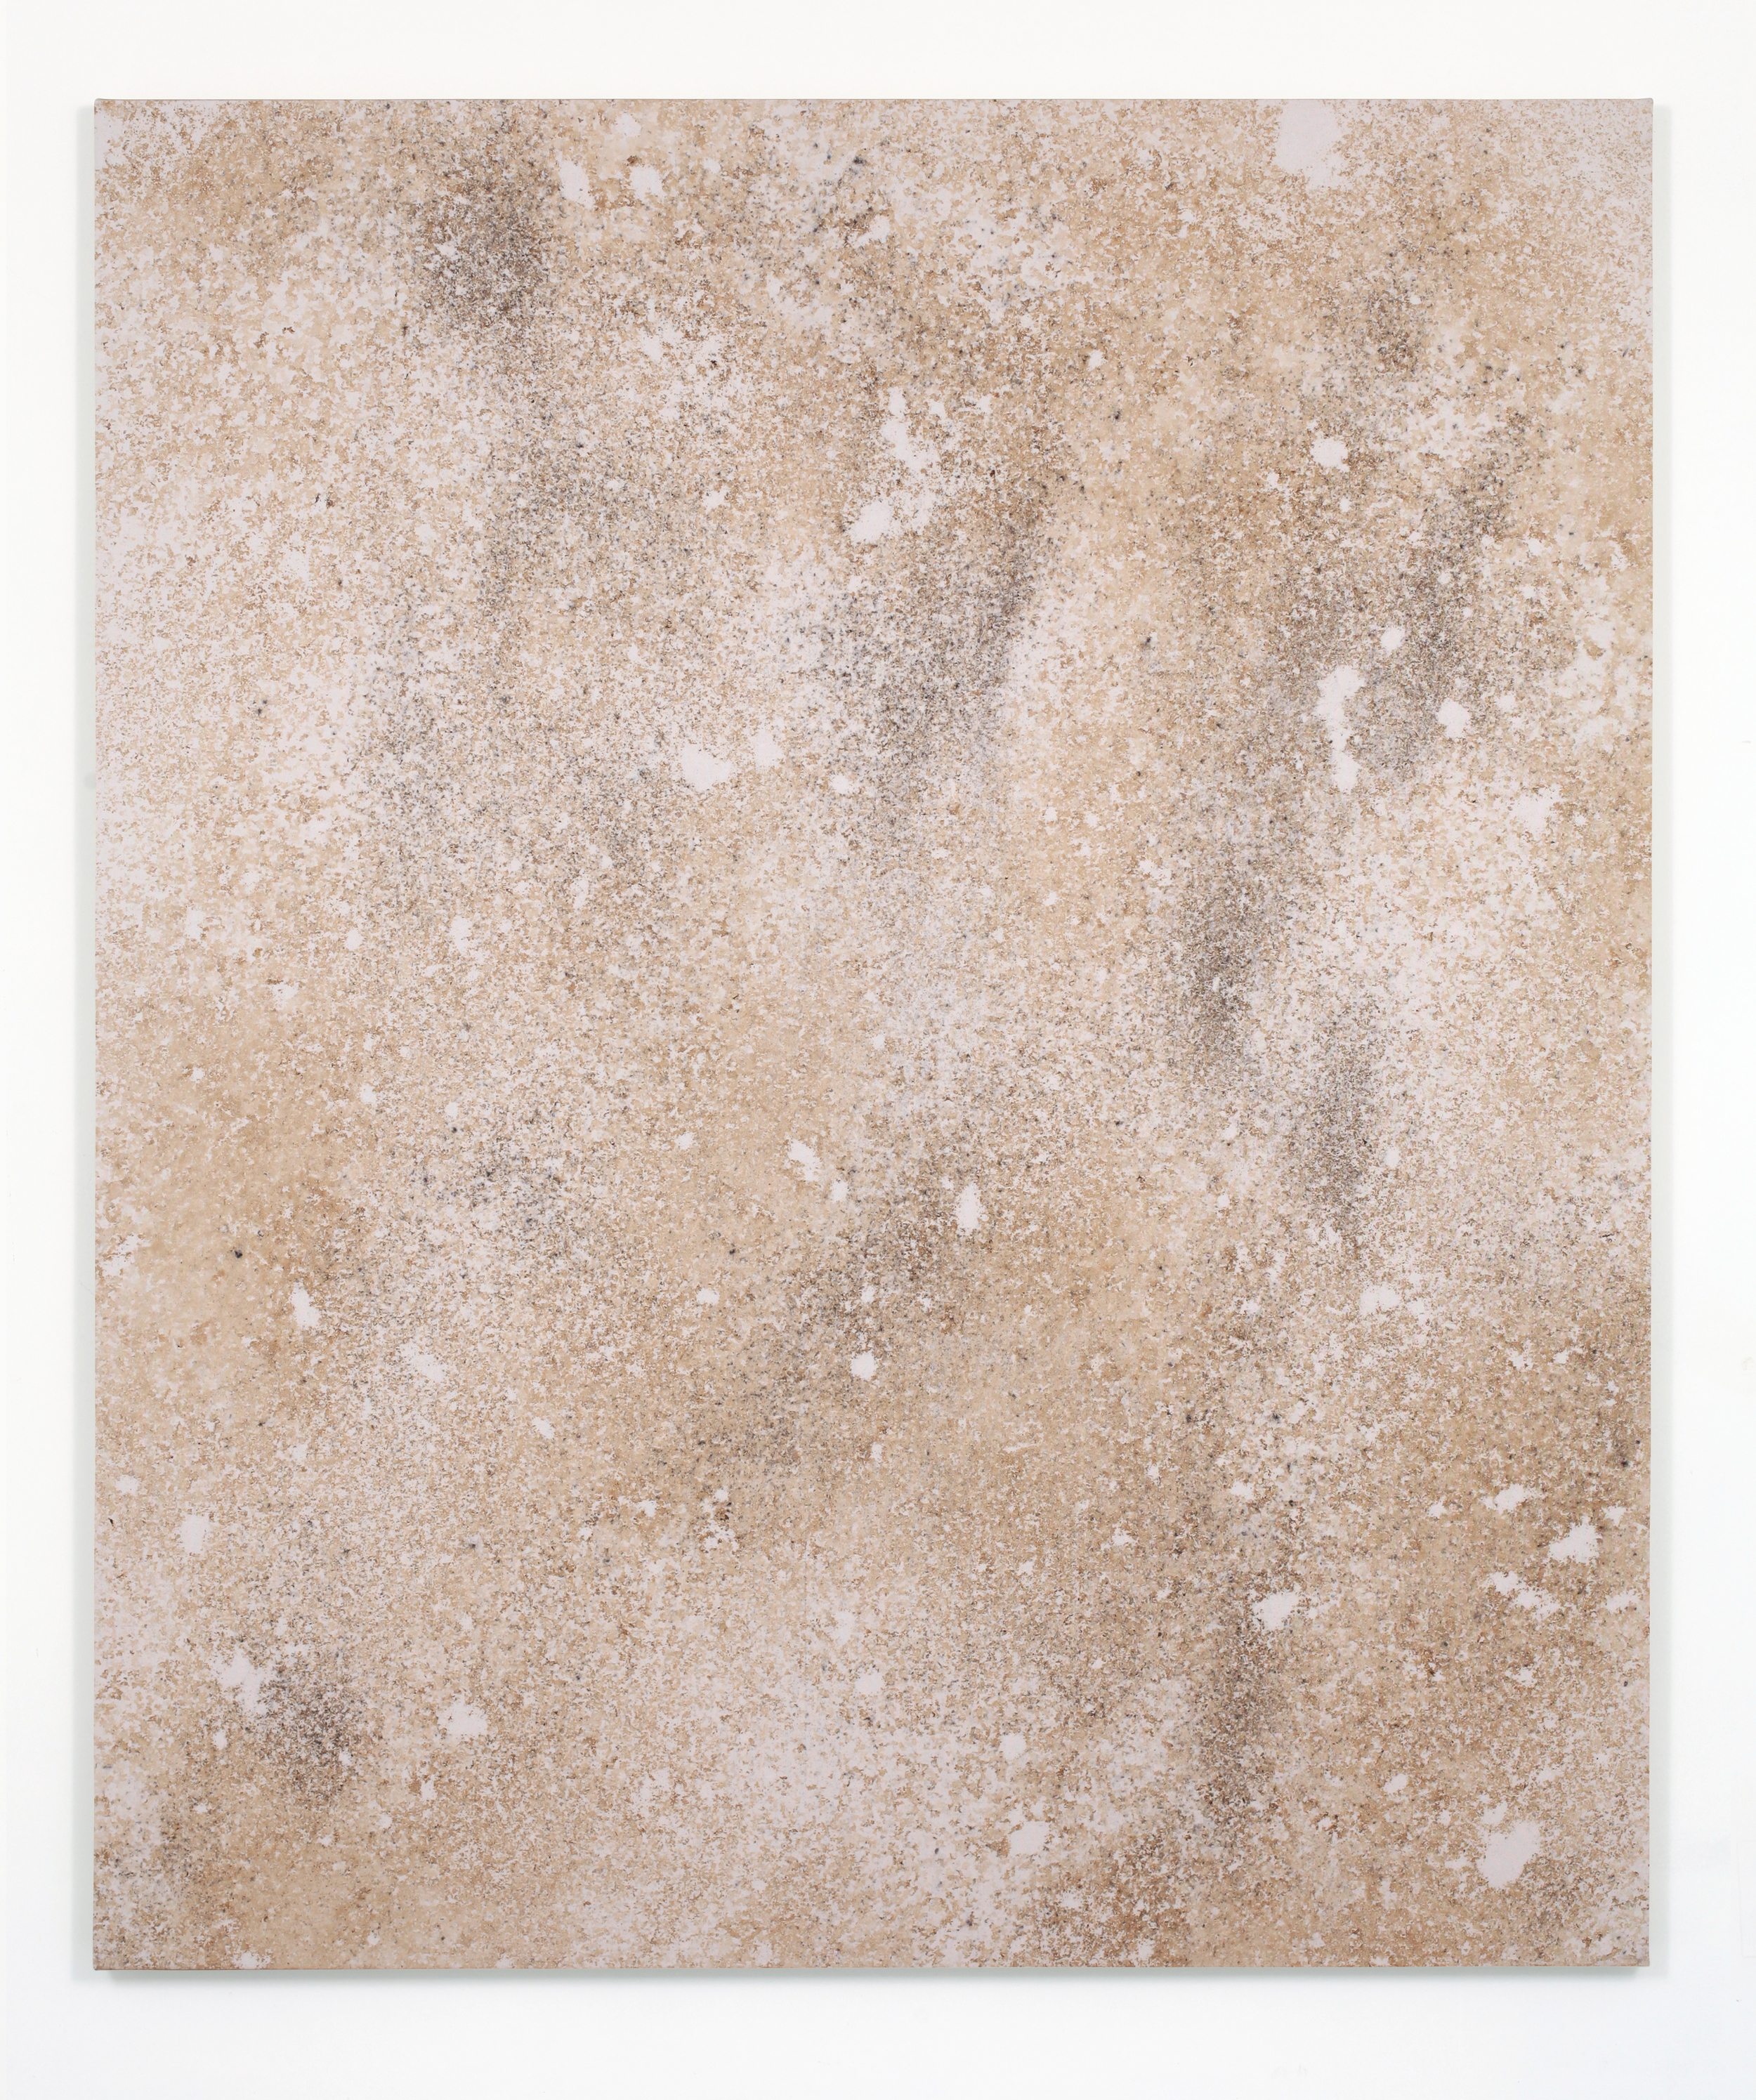 Untitled 5 (Stain), 2014